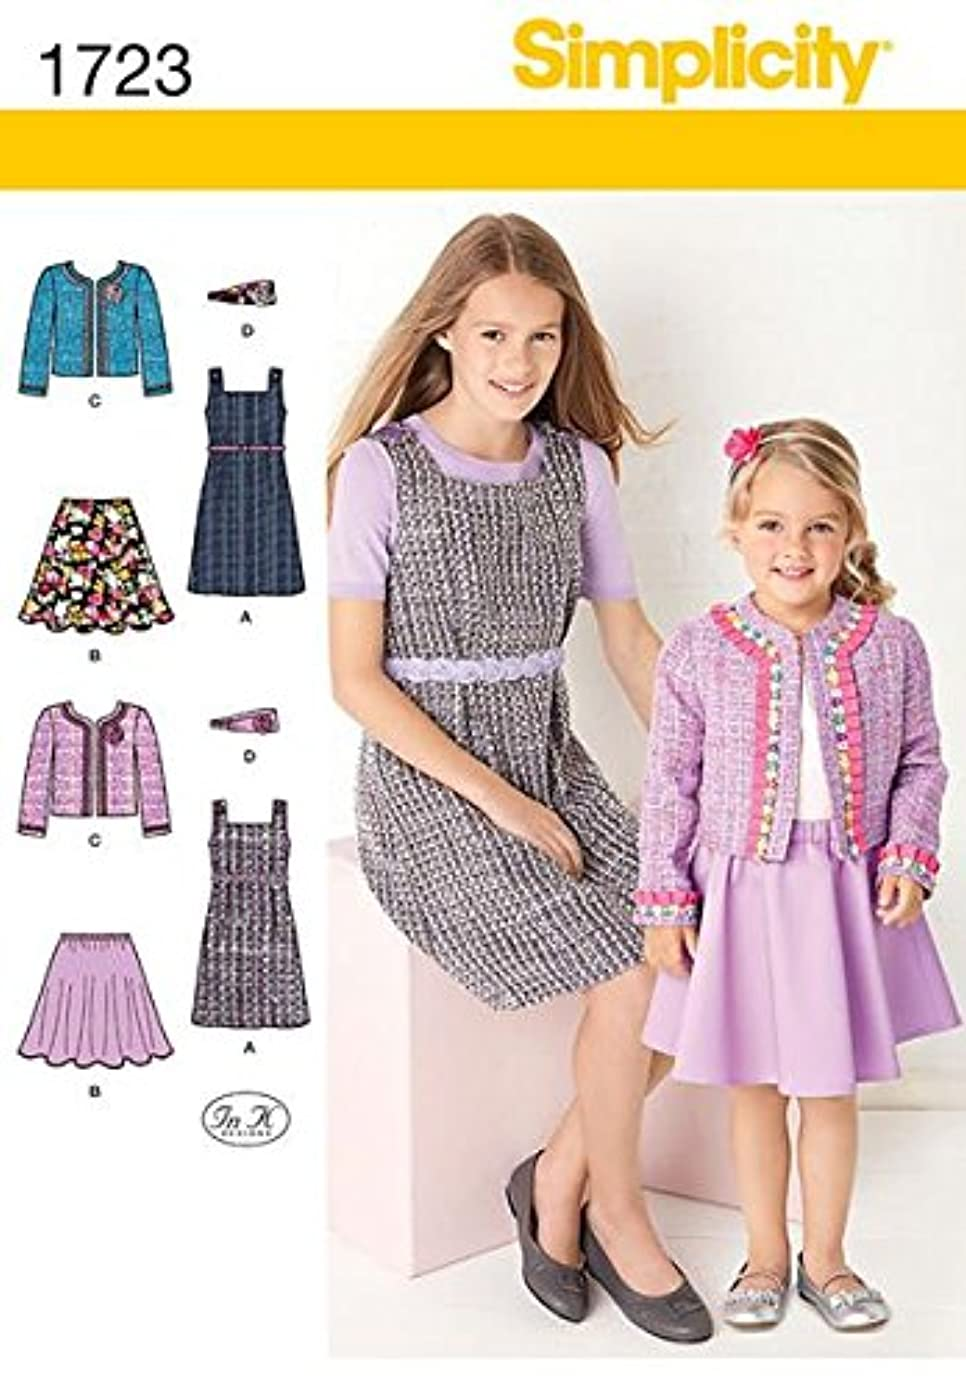 Simplicity 1723 Patterns Child's and Girls' Sportswear, 3, 4, 5, 6